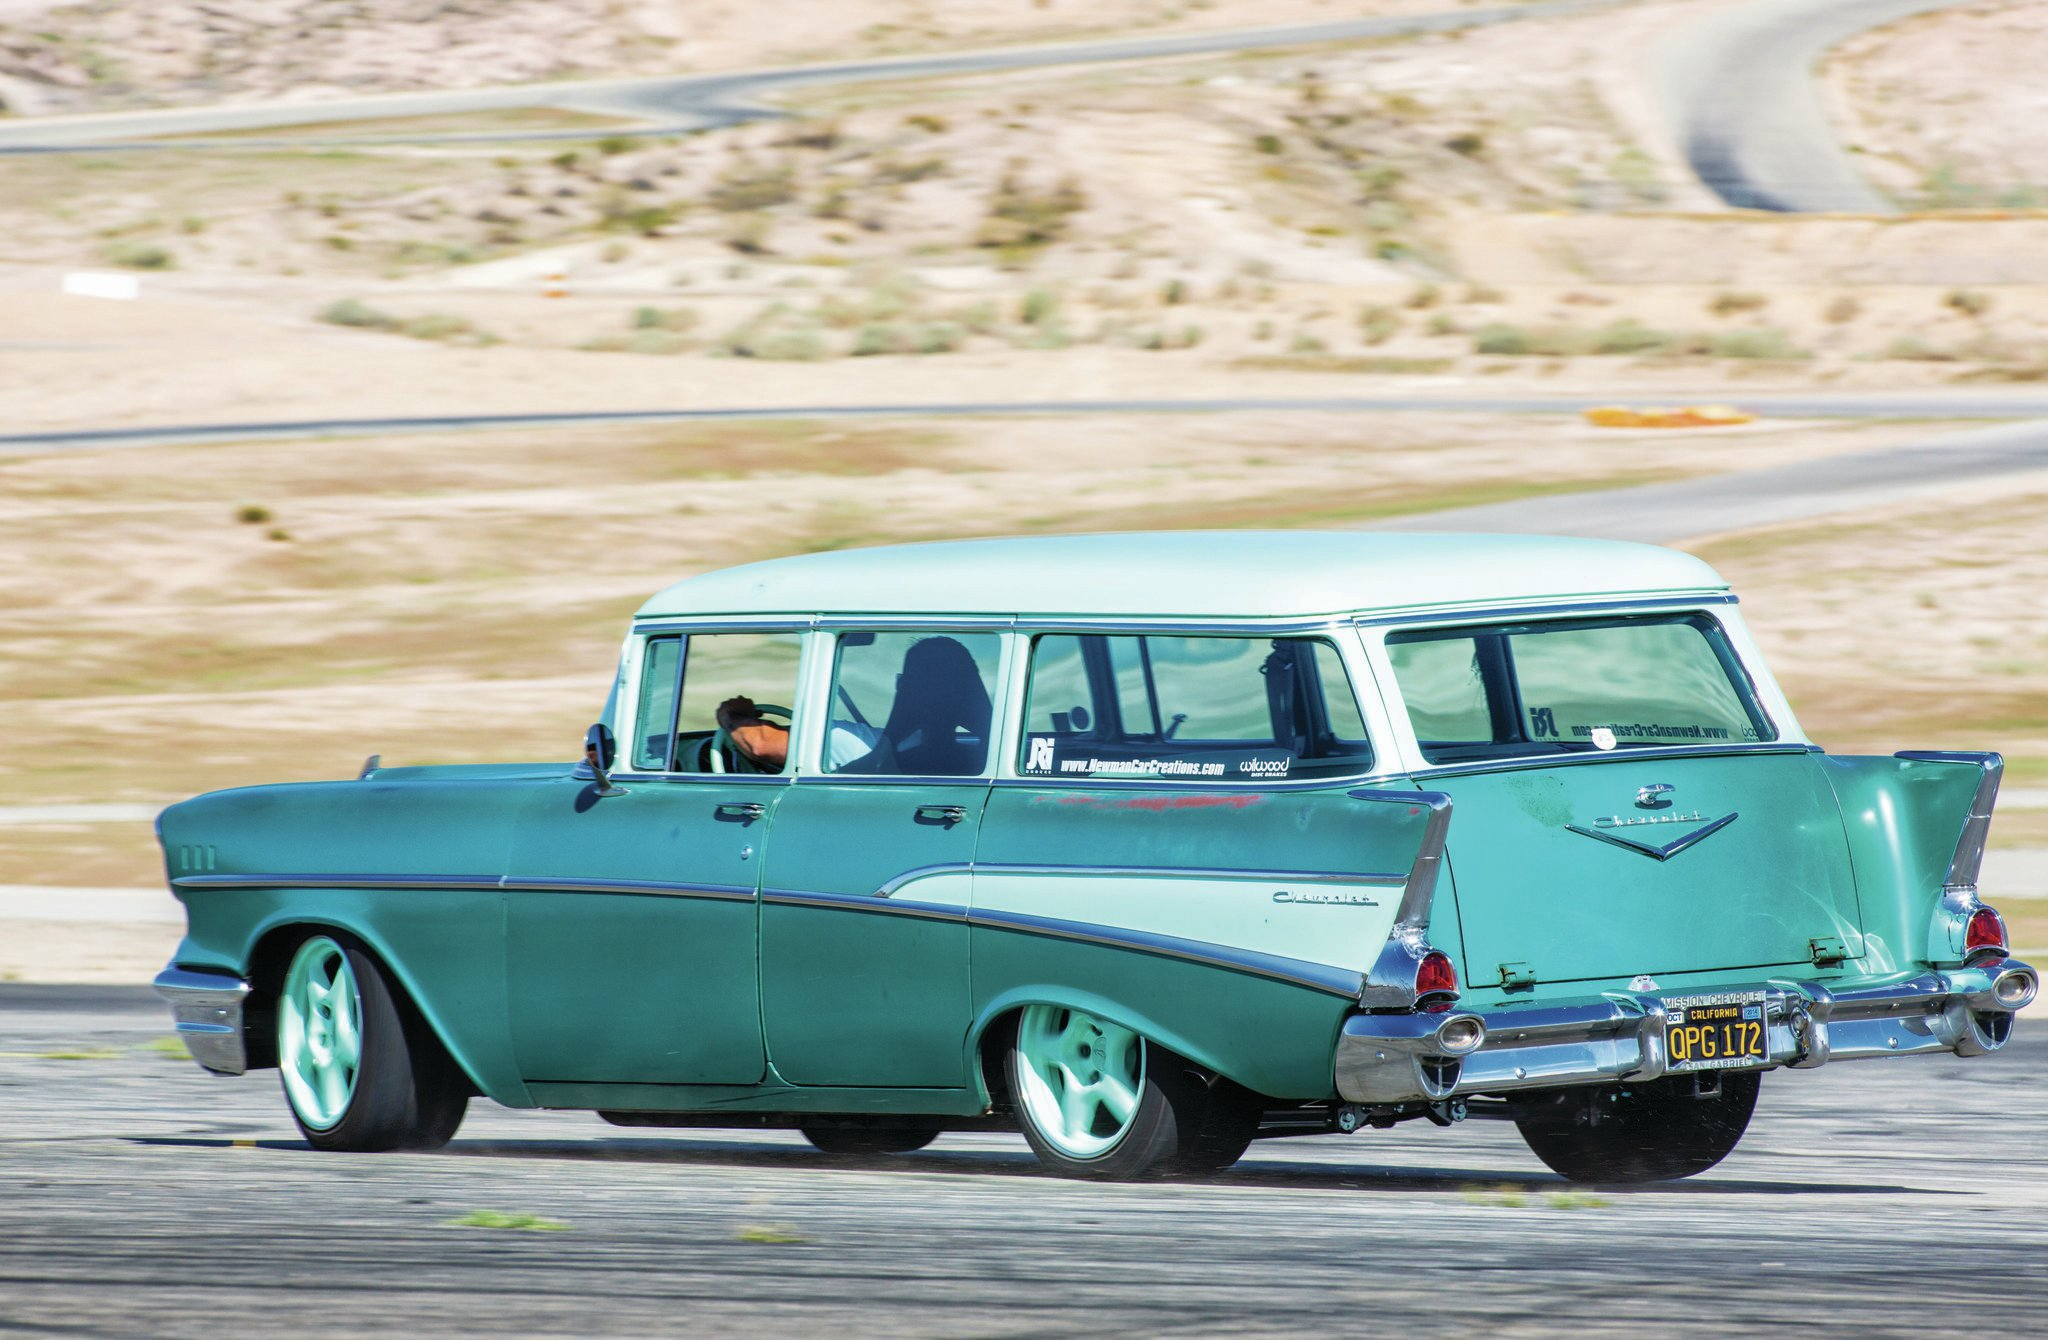 The black California plates, faded factory Highland Green paint, and wonky factory door gaps announce Kyle Newman's 1957 Chevy wagon as an original survivor, until you see the Corvette IRS peeking out under the rear bumper.